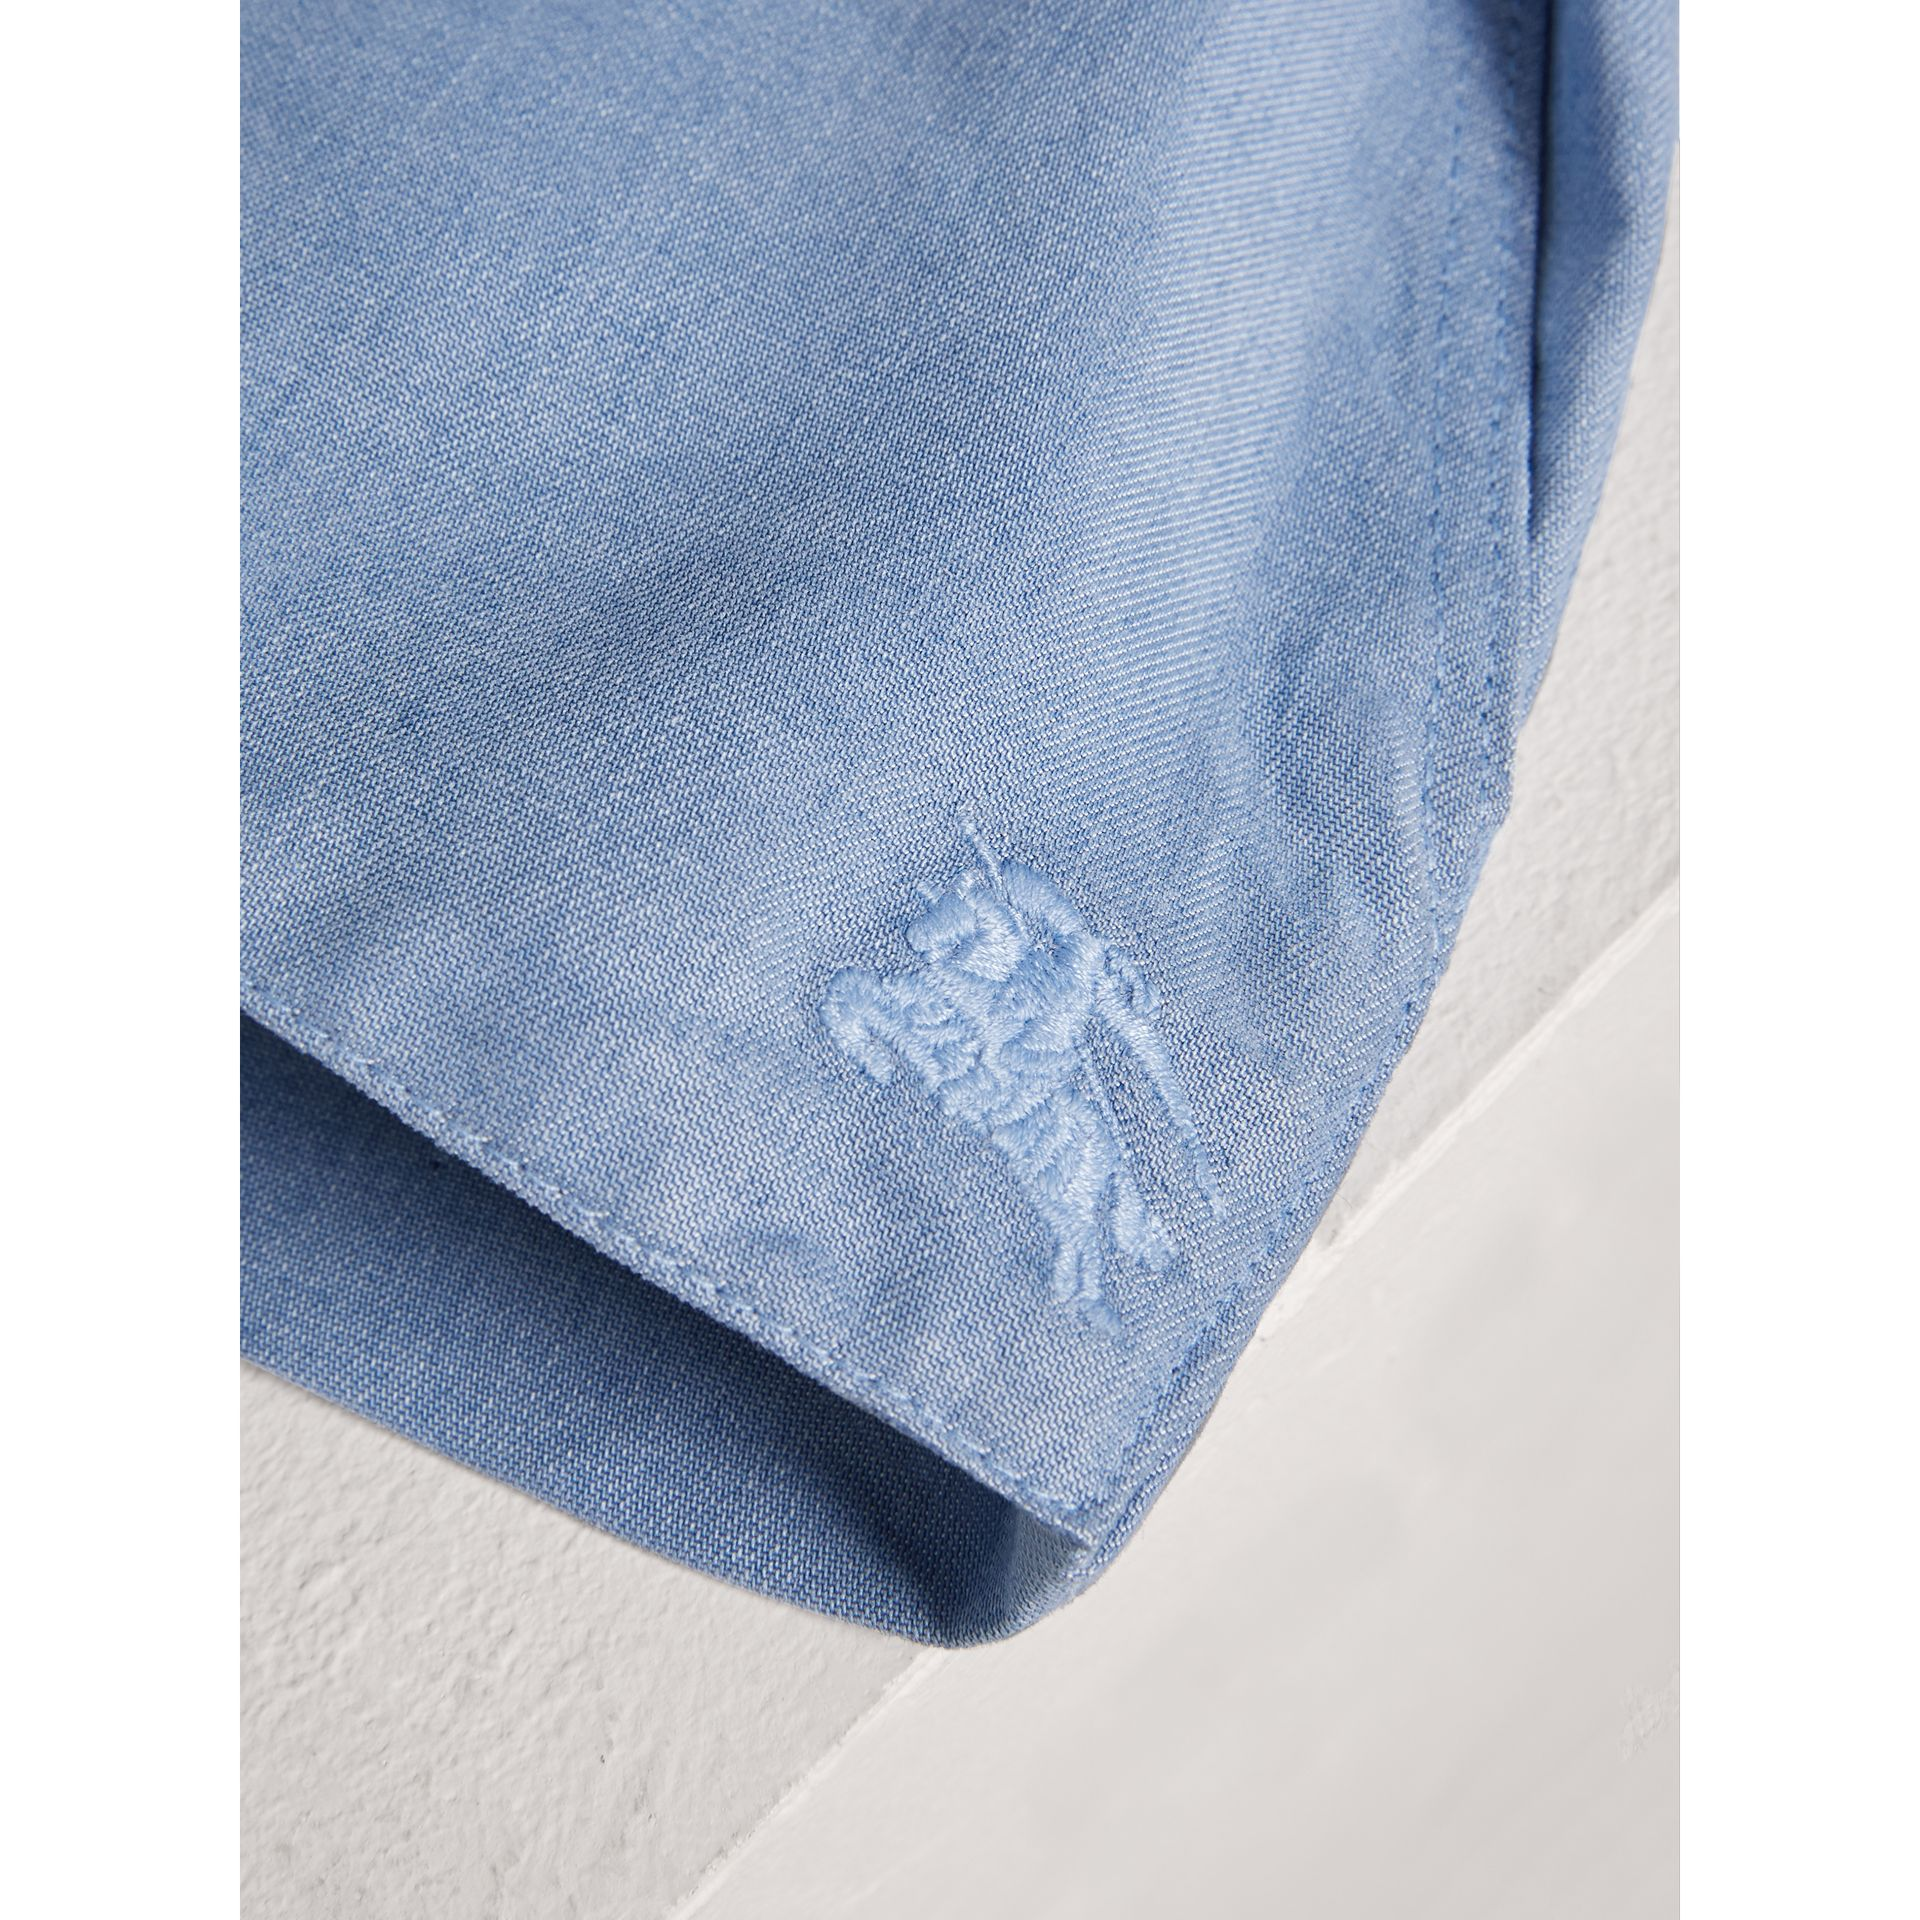 Pintuck Detail Chambray Dress with Bloomers in Steel Blue | Burberry United Kingdom - gallery image 2